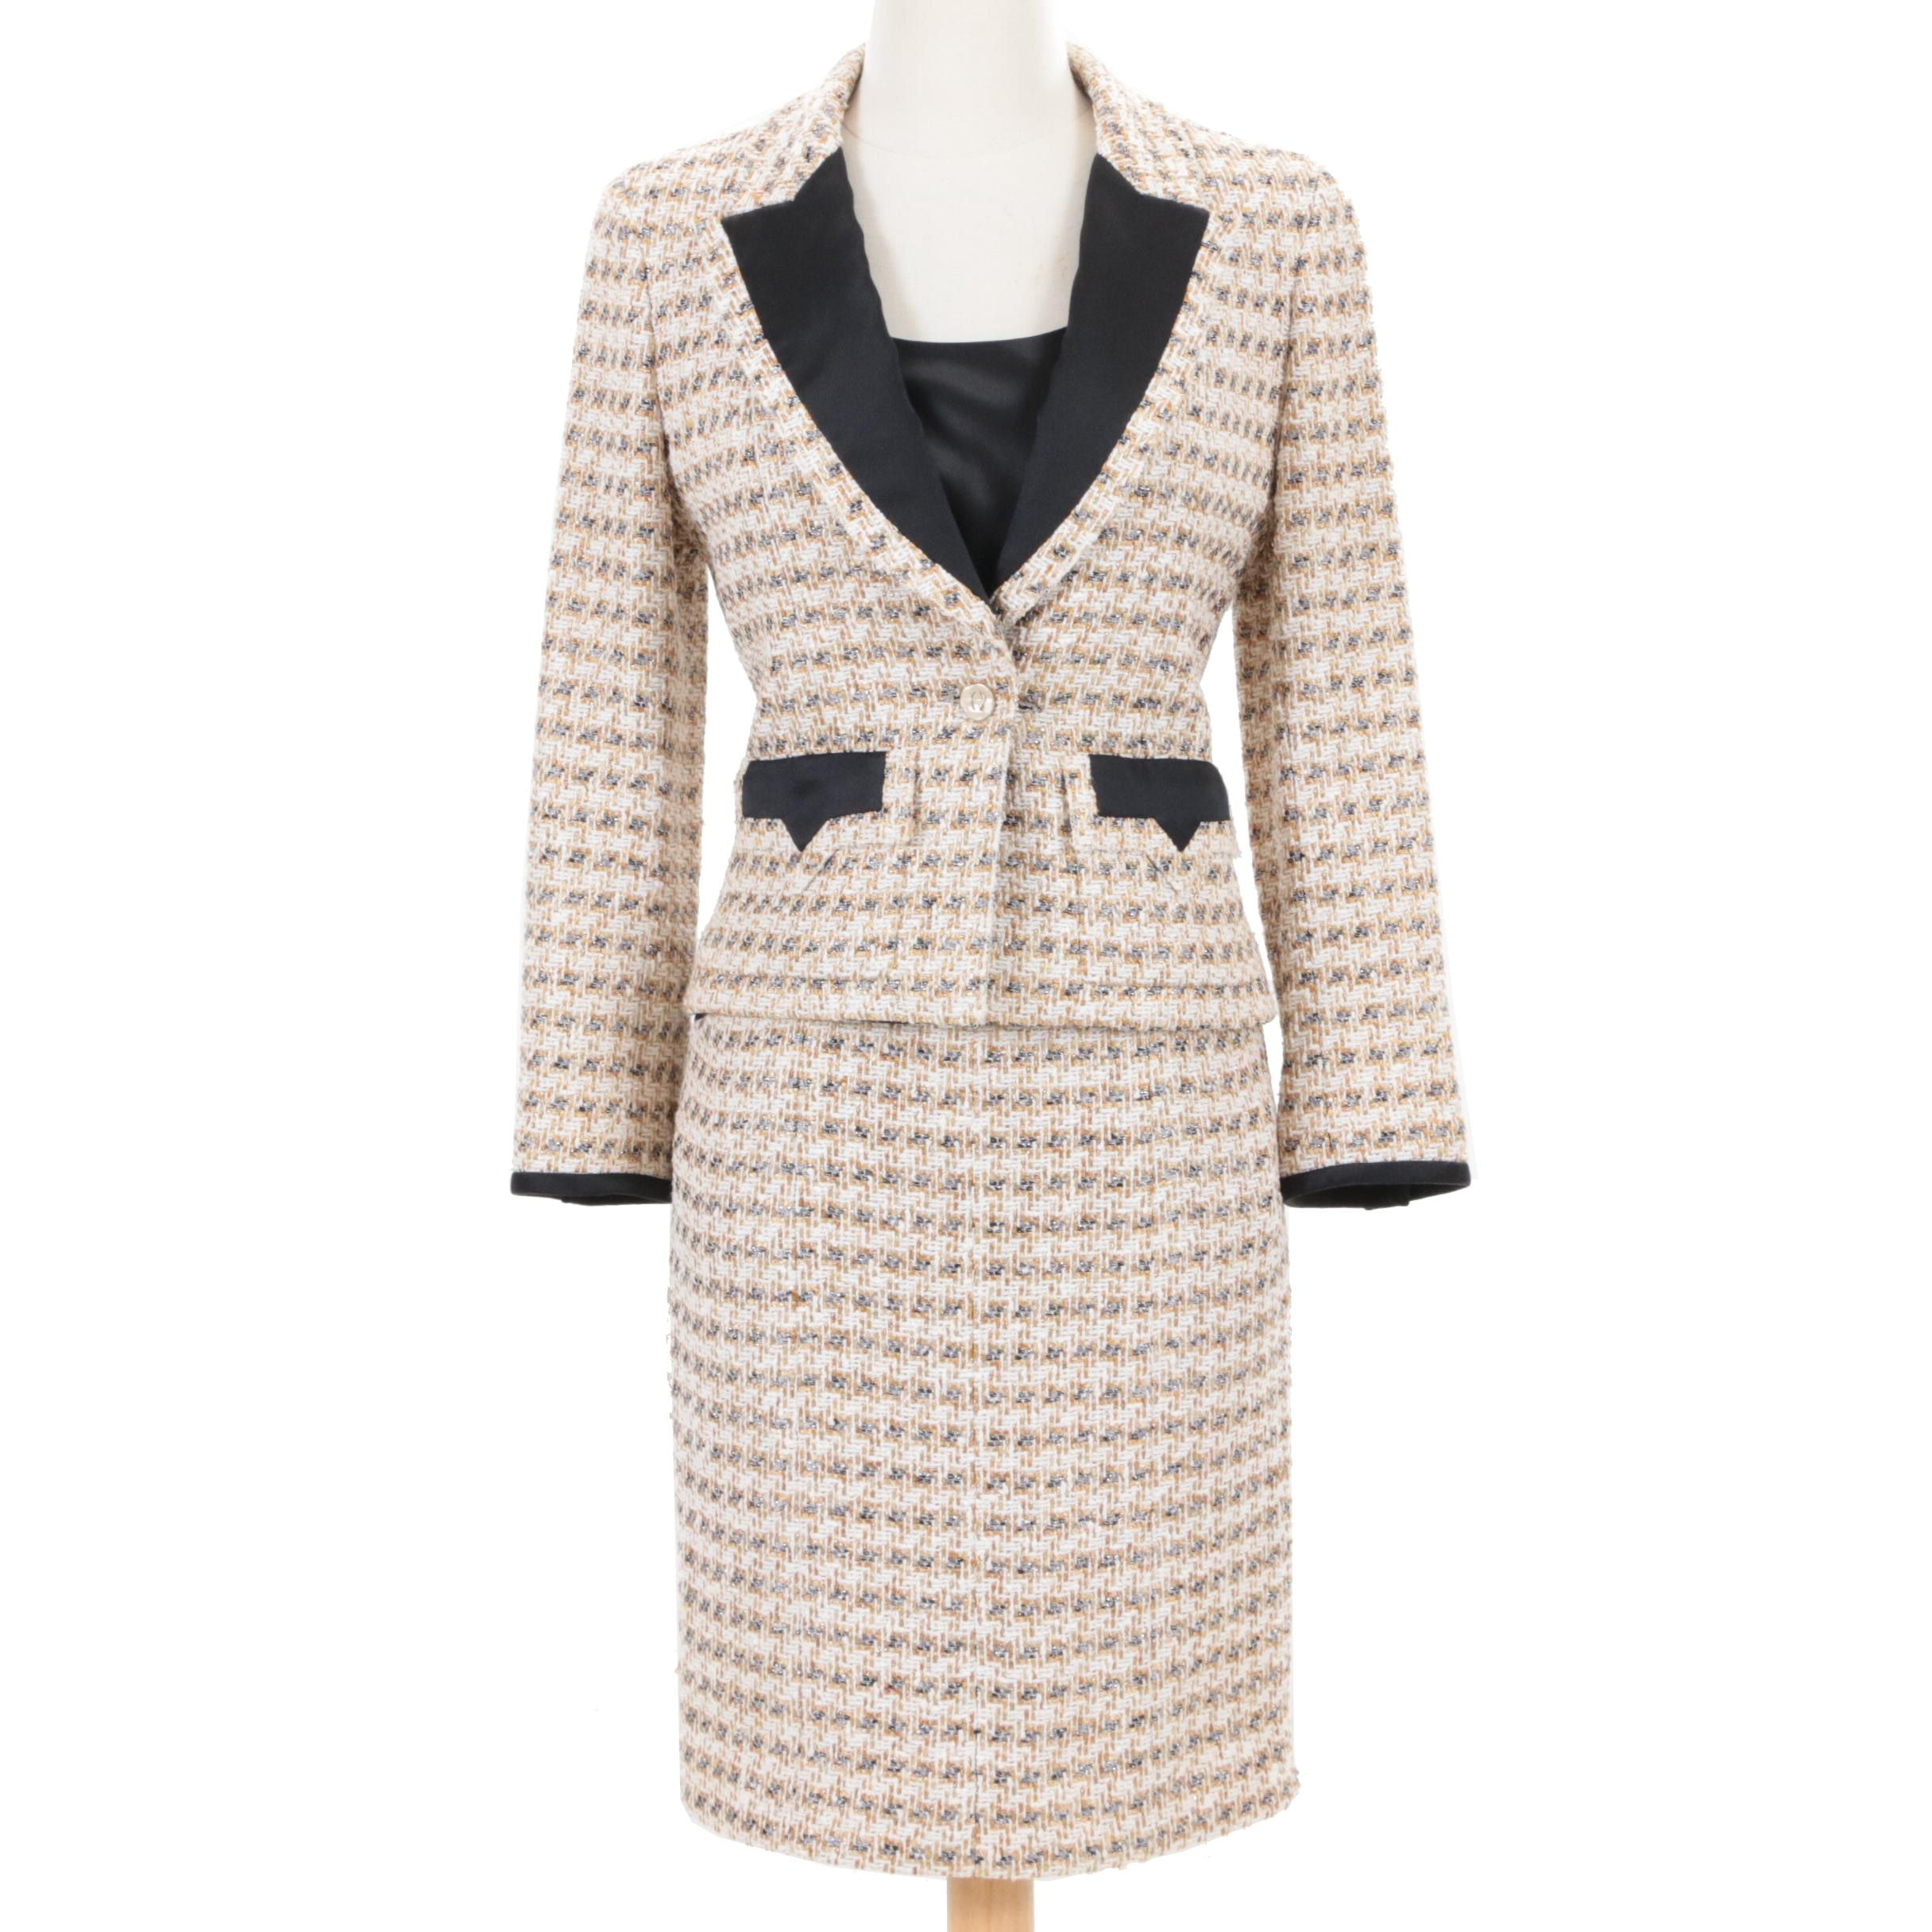 Chanel 2006 Printemps Collection Tweed Skirt Suit with Lafayette 148 Silk Tank